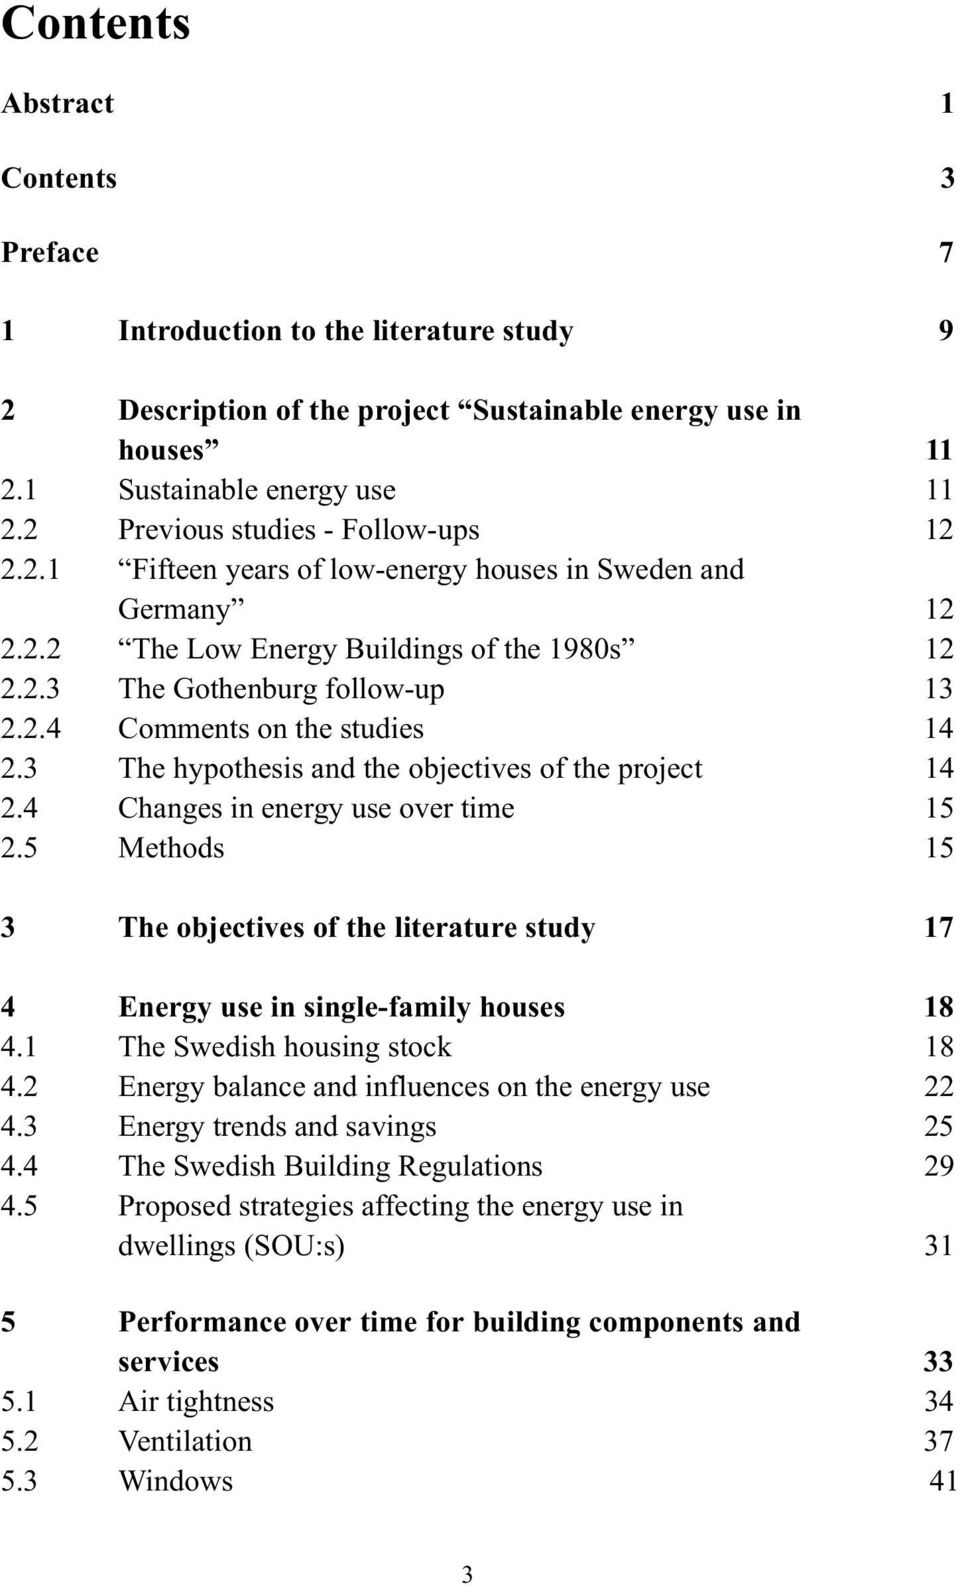 3 The hypothesis and the objectives of the project 14 2.4 Changes in energy use over time 15 2.5 Methods 15 3 The objectives of the literature study 17 4 Energy use in single-family houses 18 4.